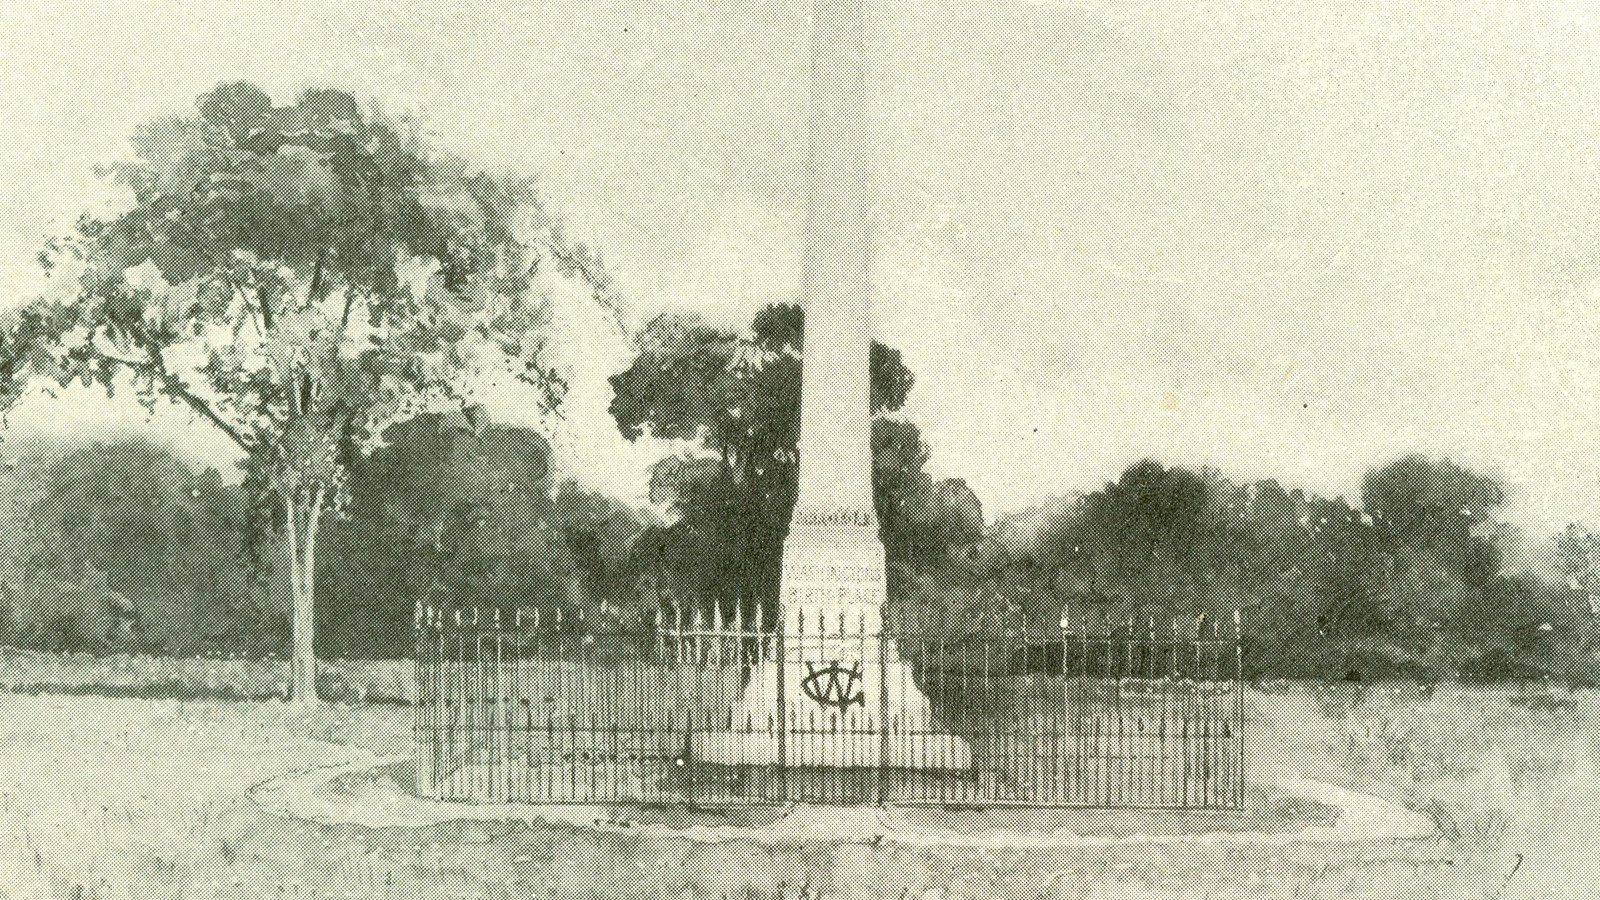 The Birthplace Monument